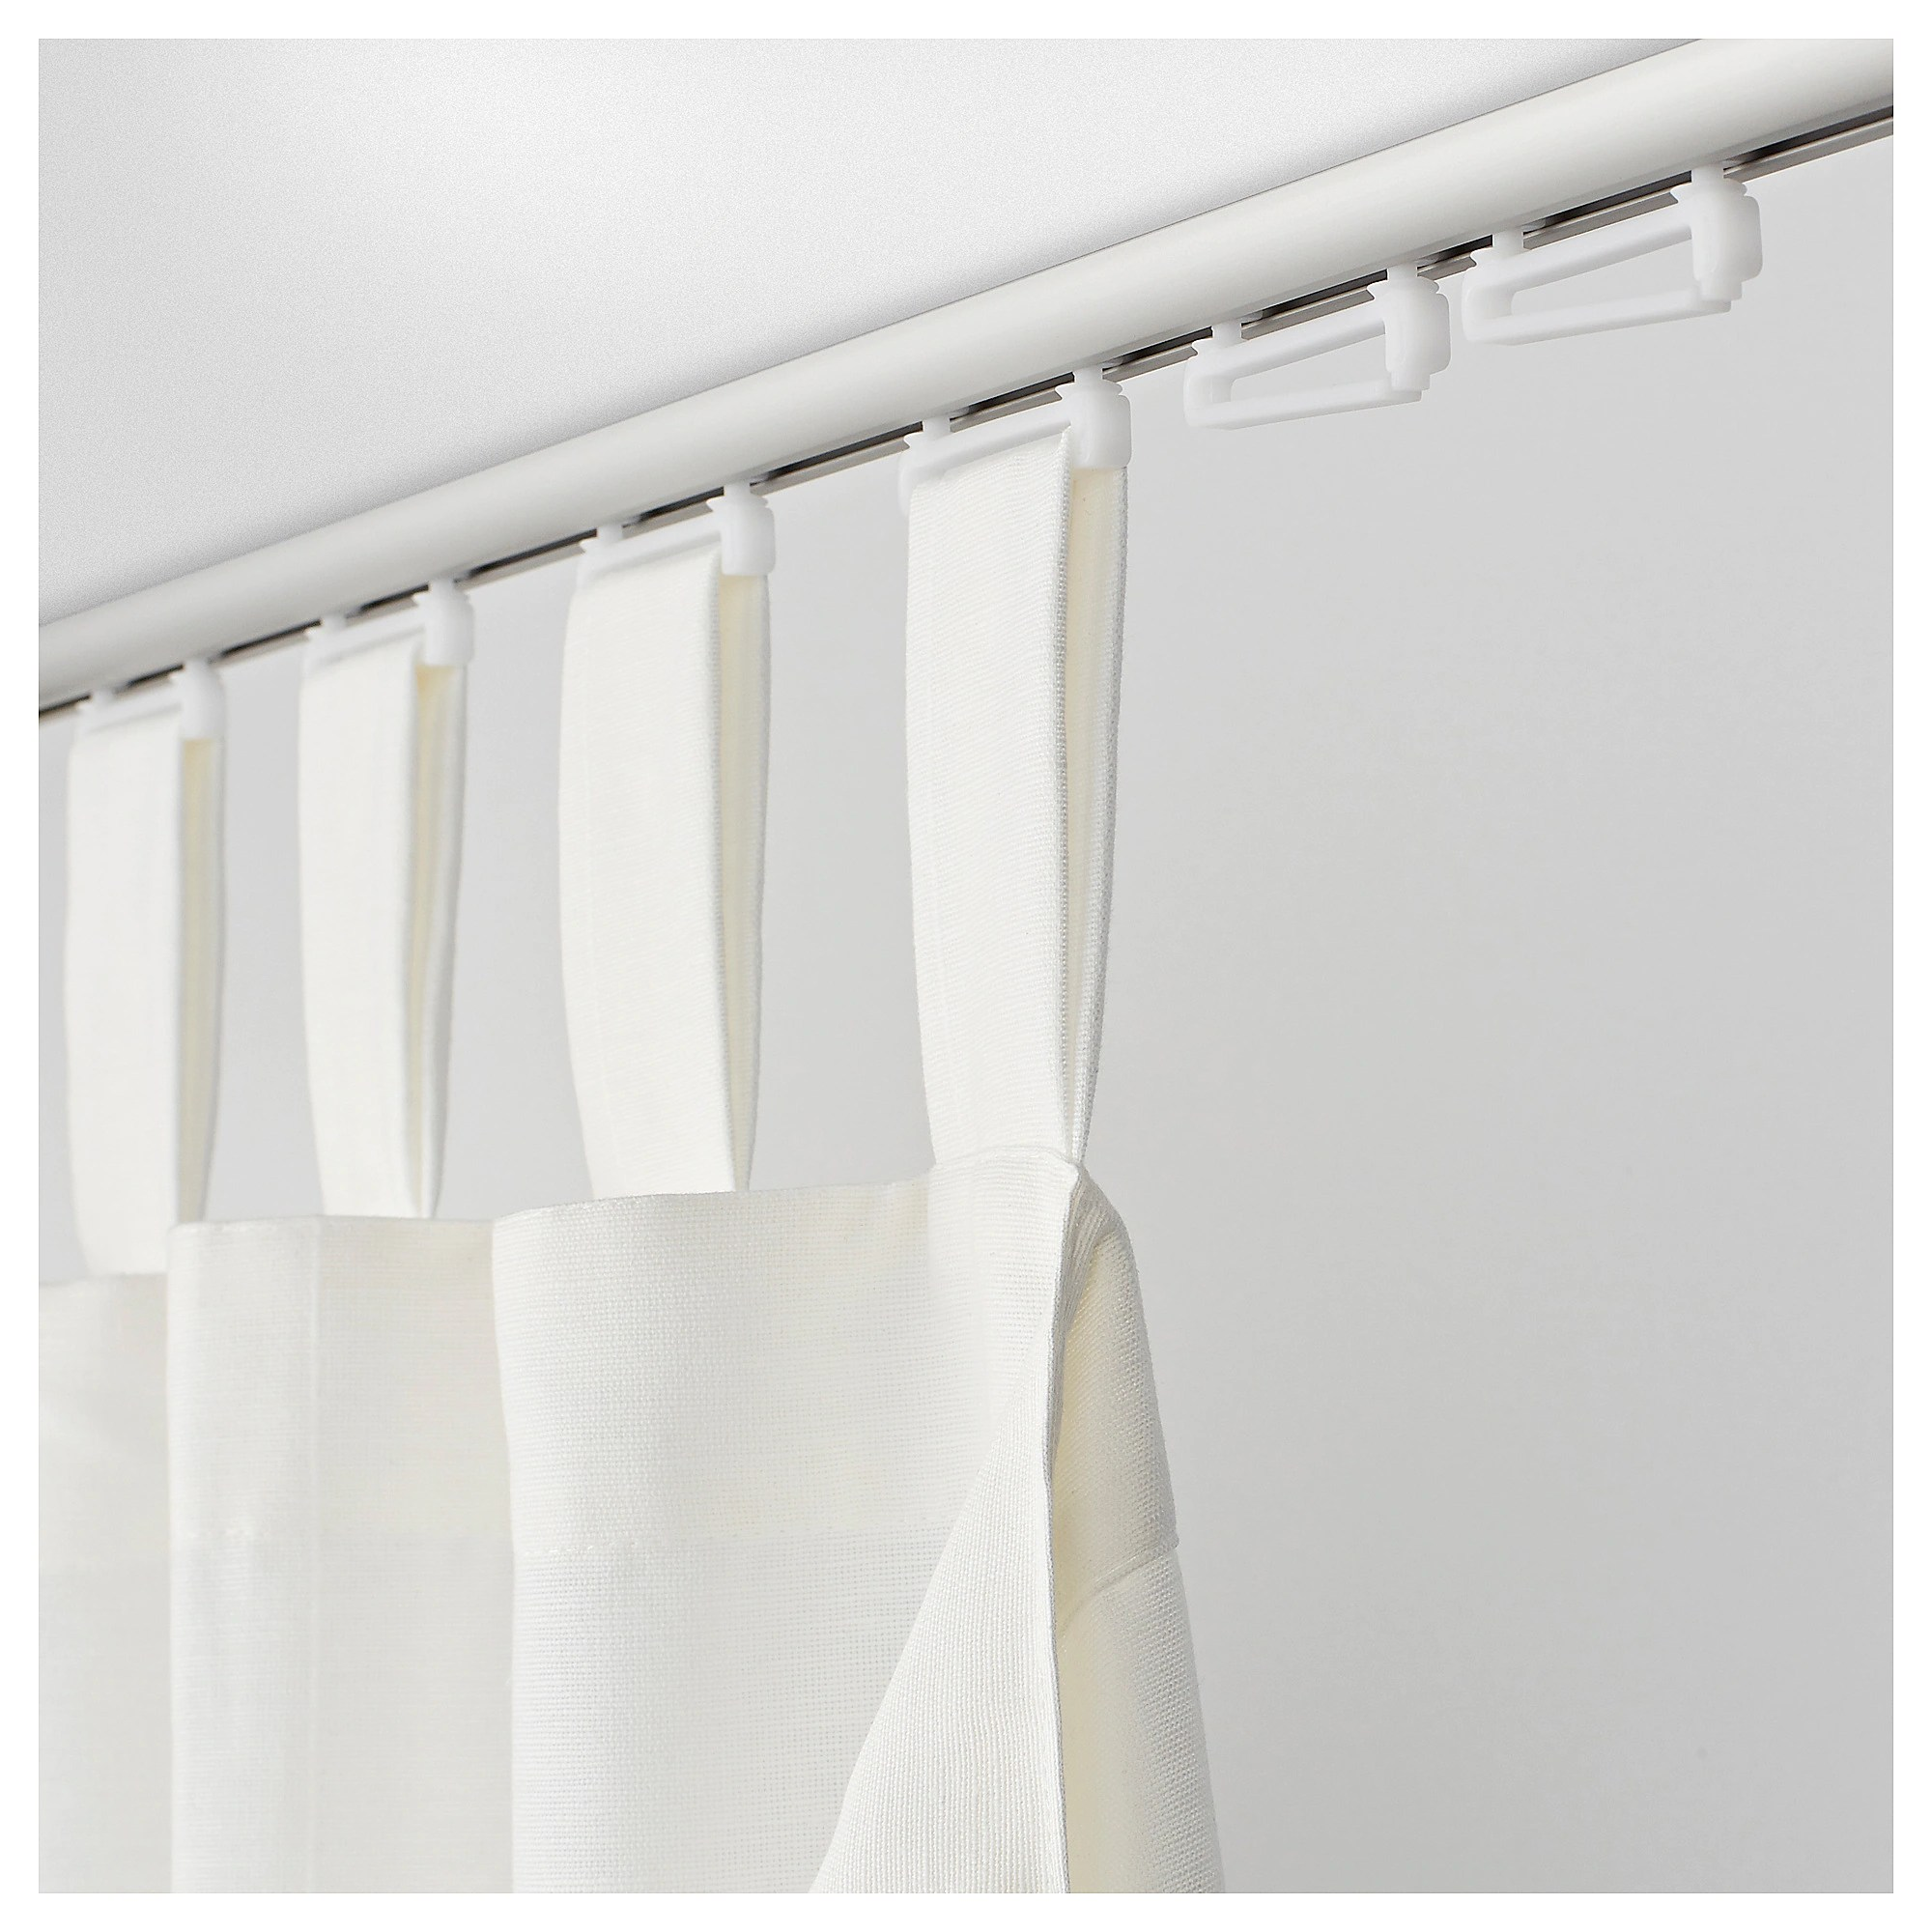 Schlaufengardinen TrÖsta Slider For Loop Curtain Maxi White